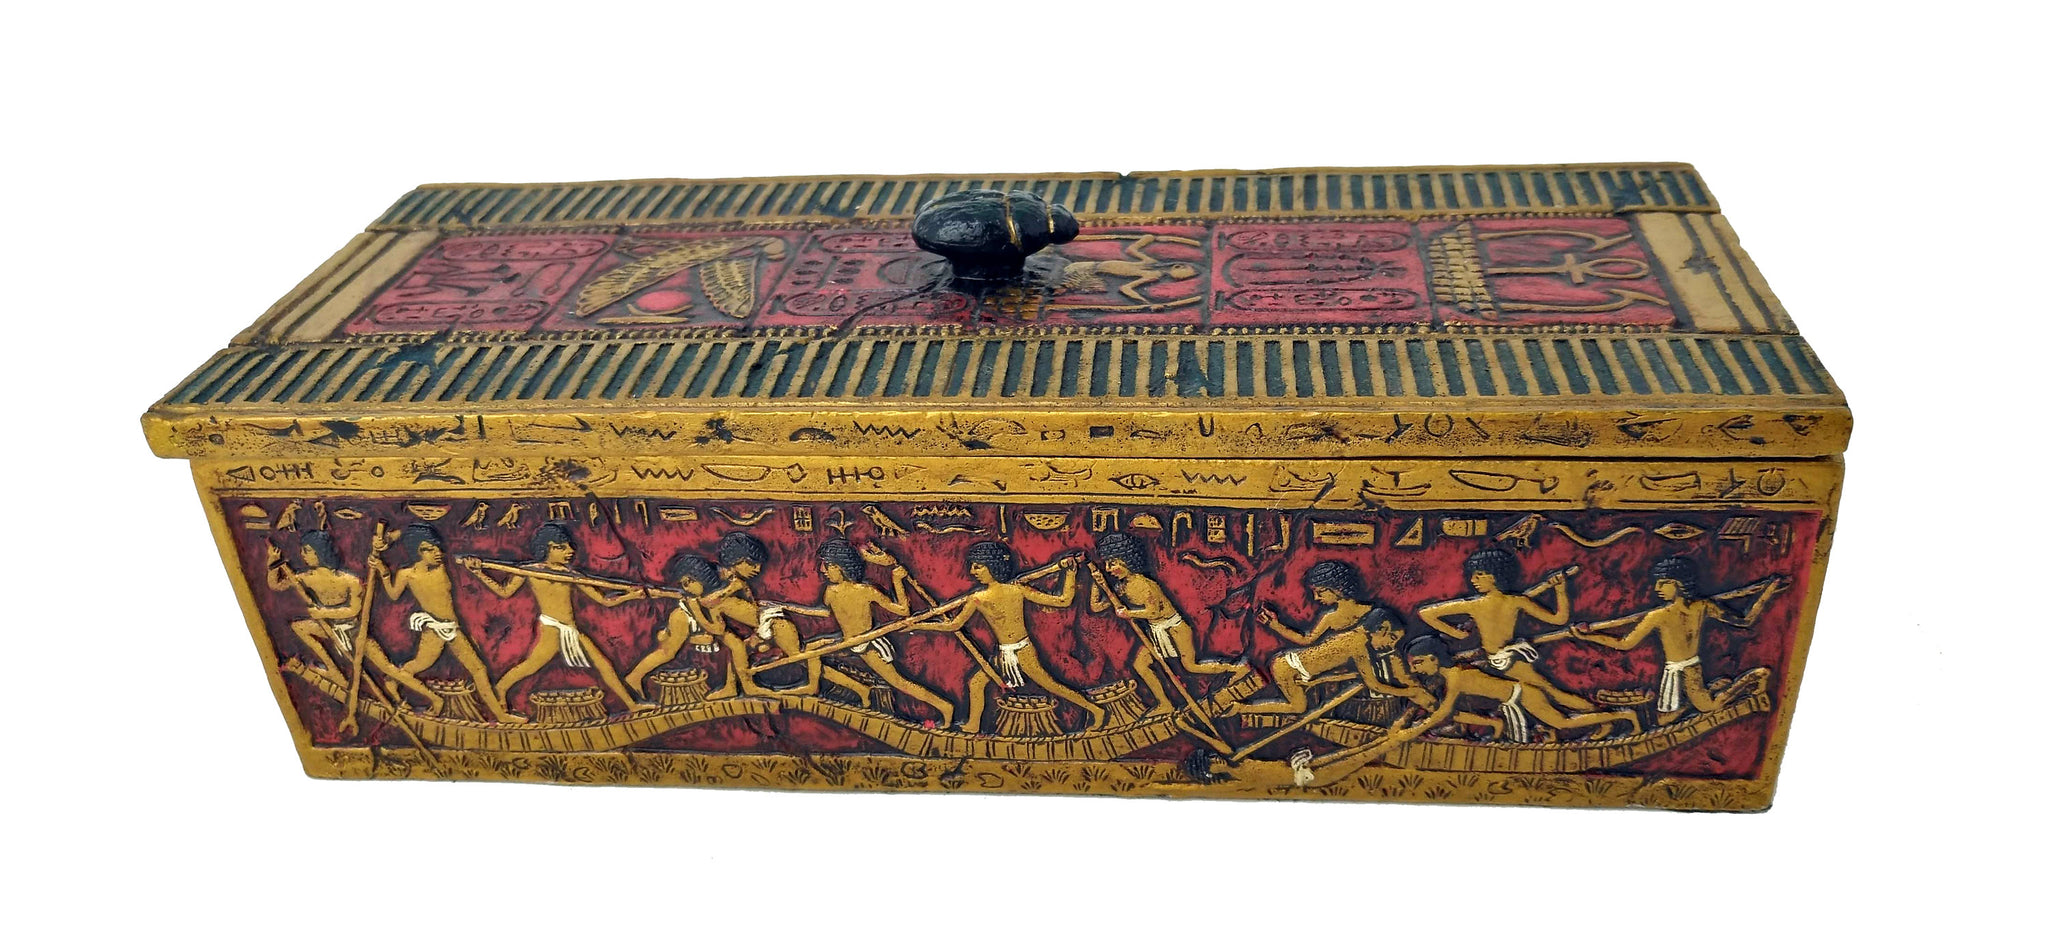 Scarab Trinket Box - Egyptian Scarab Beetle - Ancient Egyptian Positive Talisman Scarab Beetle with Scene of the Nile River - 8'' / 20.5cm